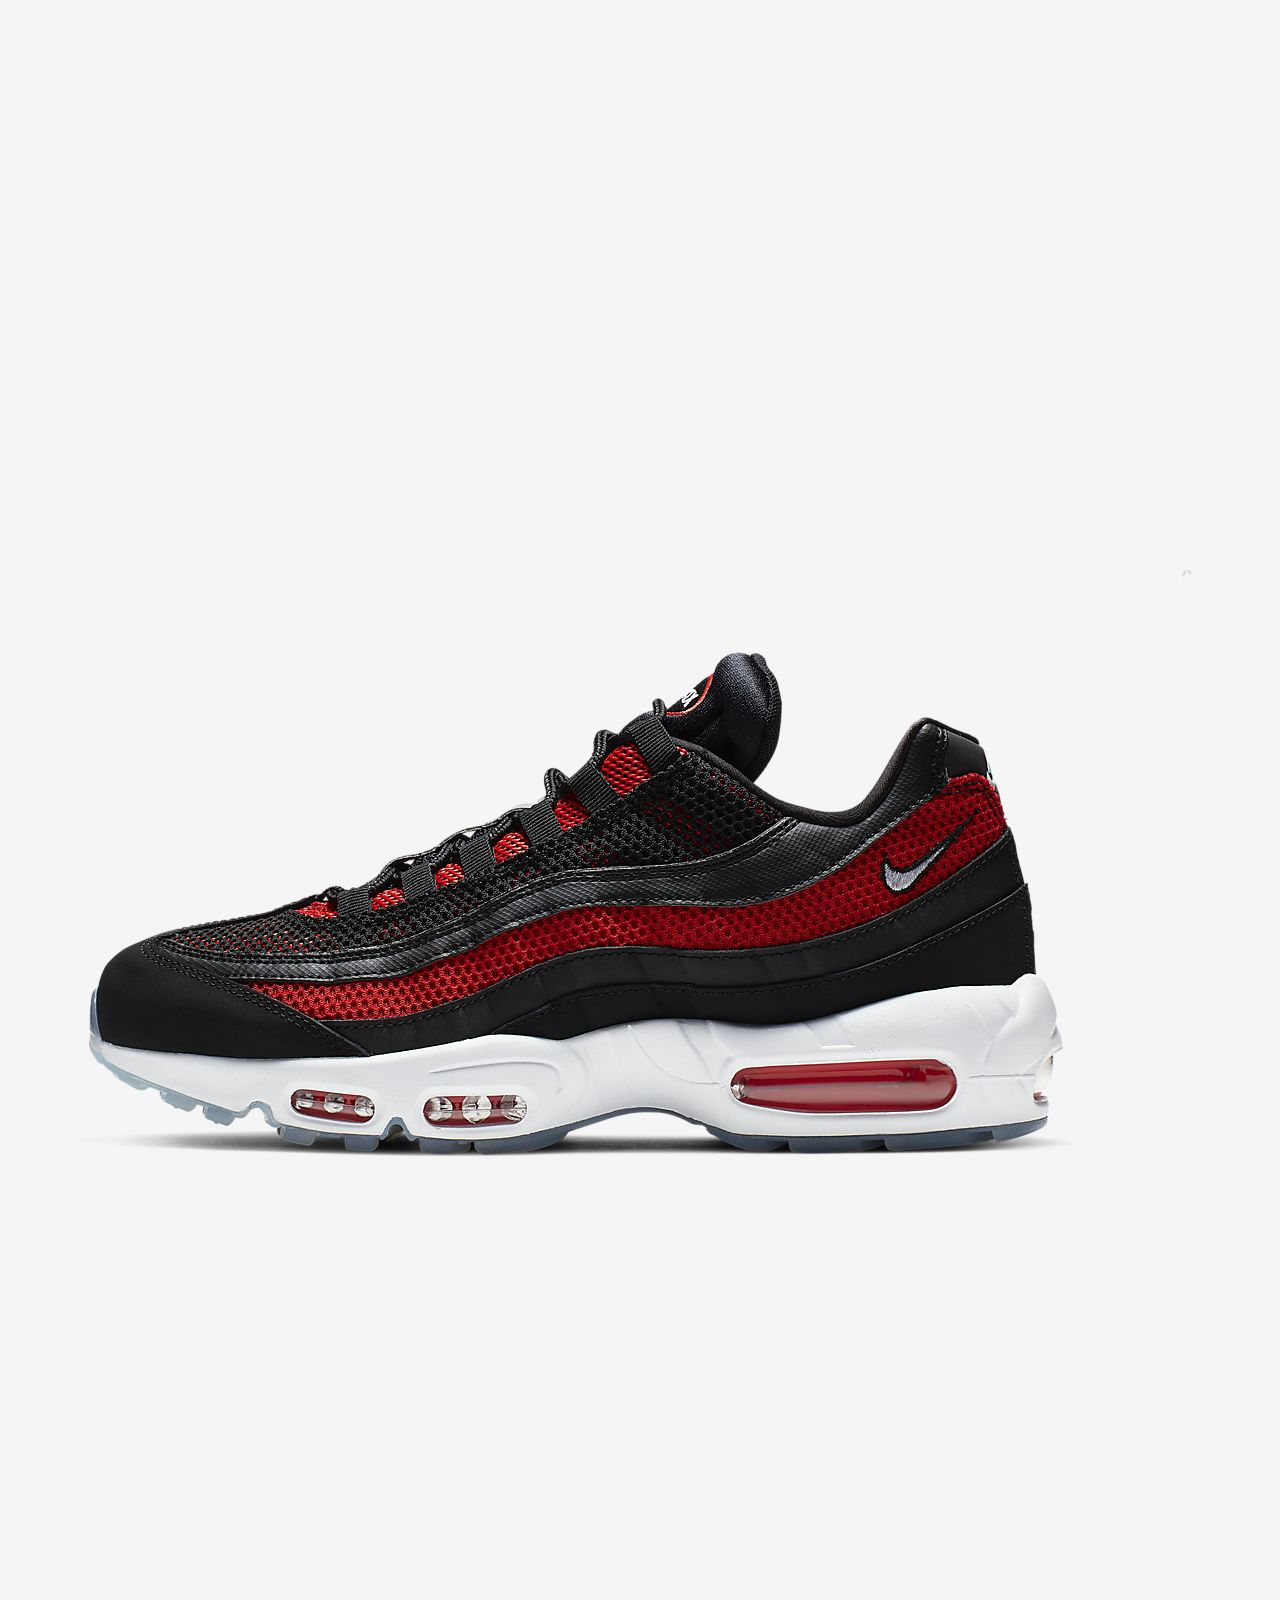 innovative design b8ac4 17ff1 Men s Shoe. Nike Air Max 95 Essential